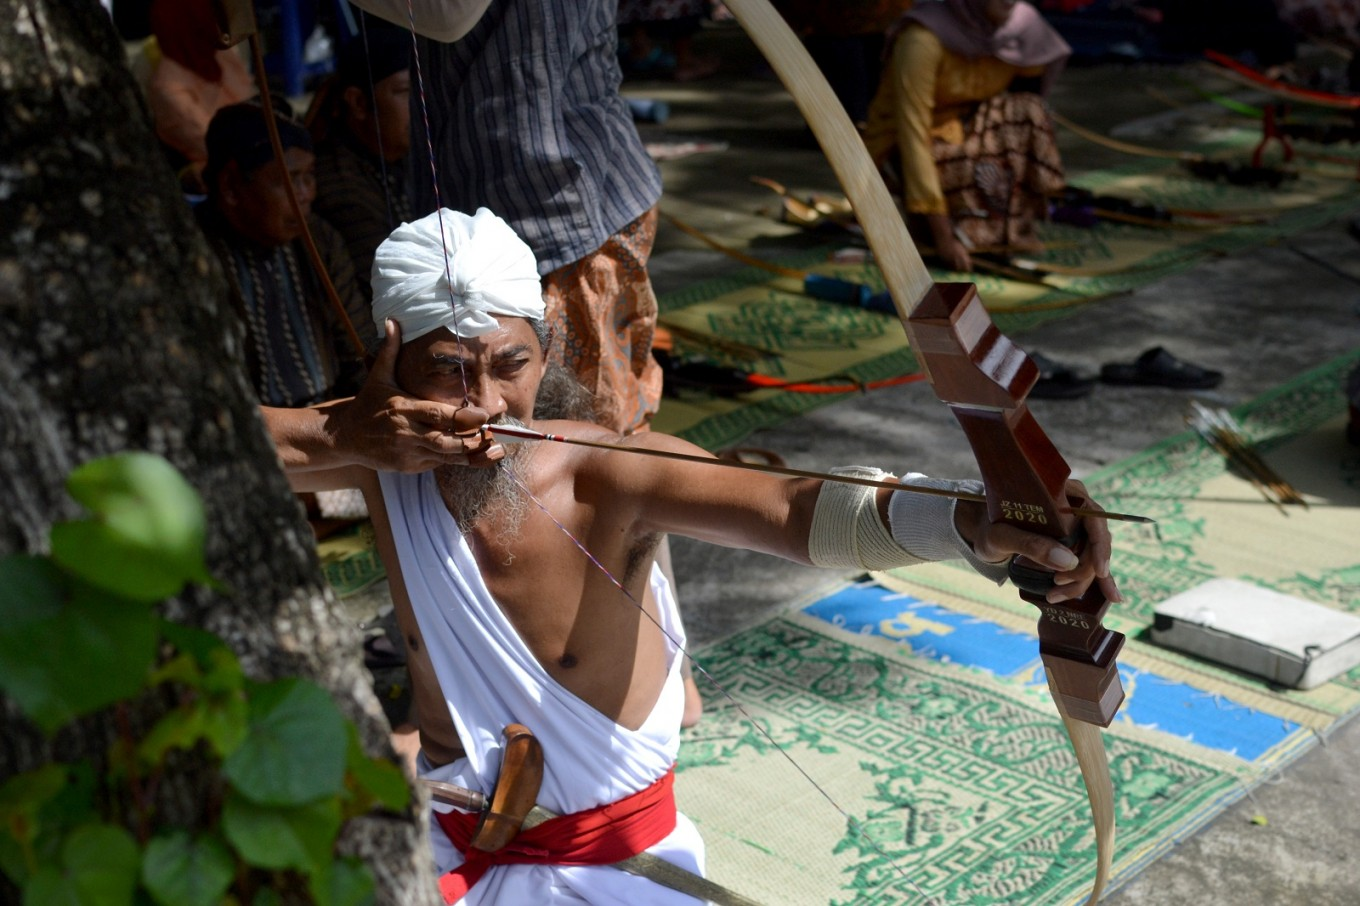 The archers take aim from a sitting position and wear traditional Javanese attire during competitions.